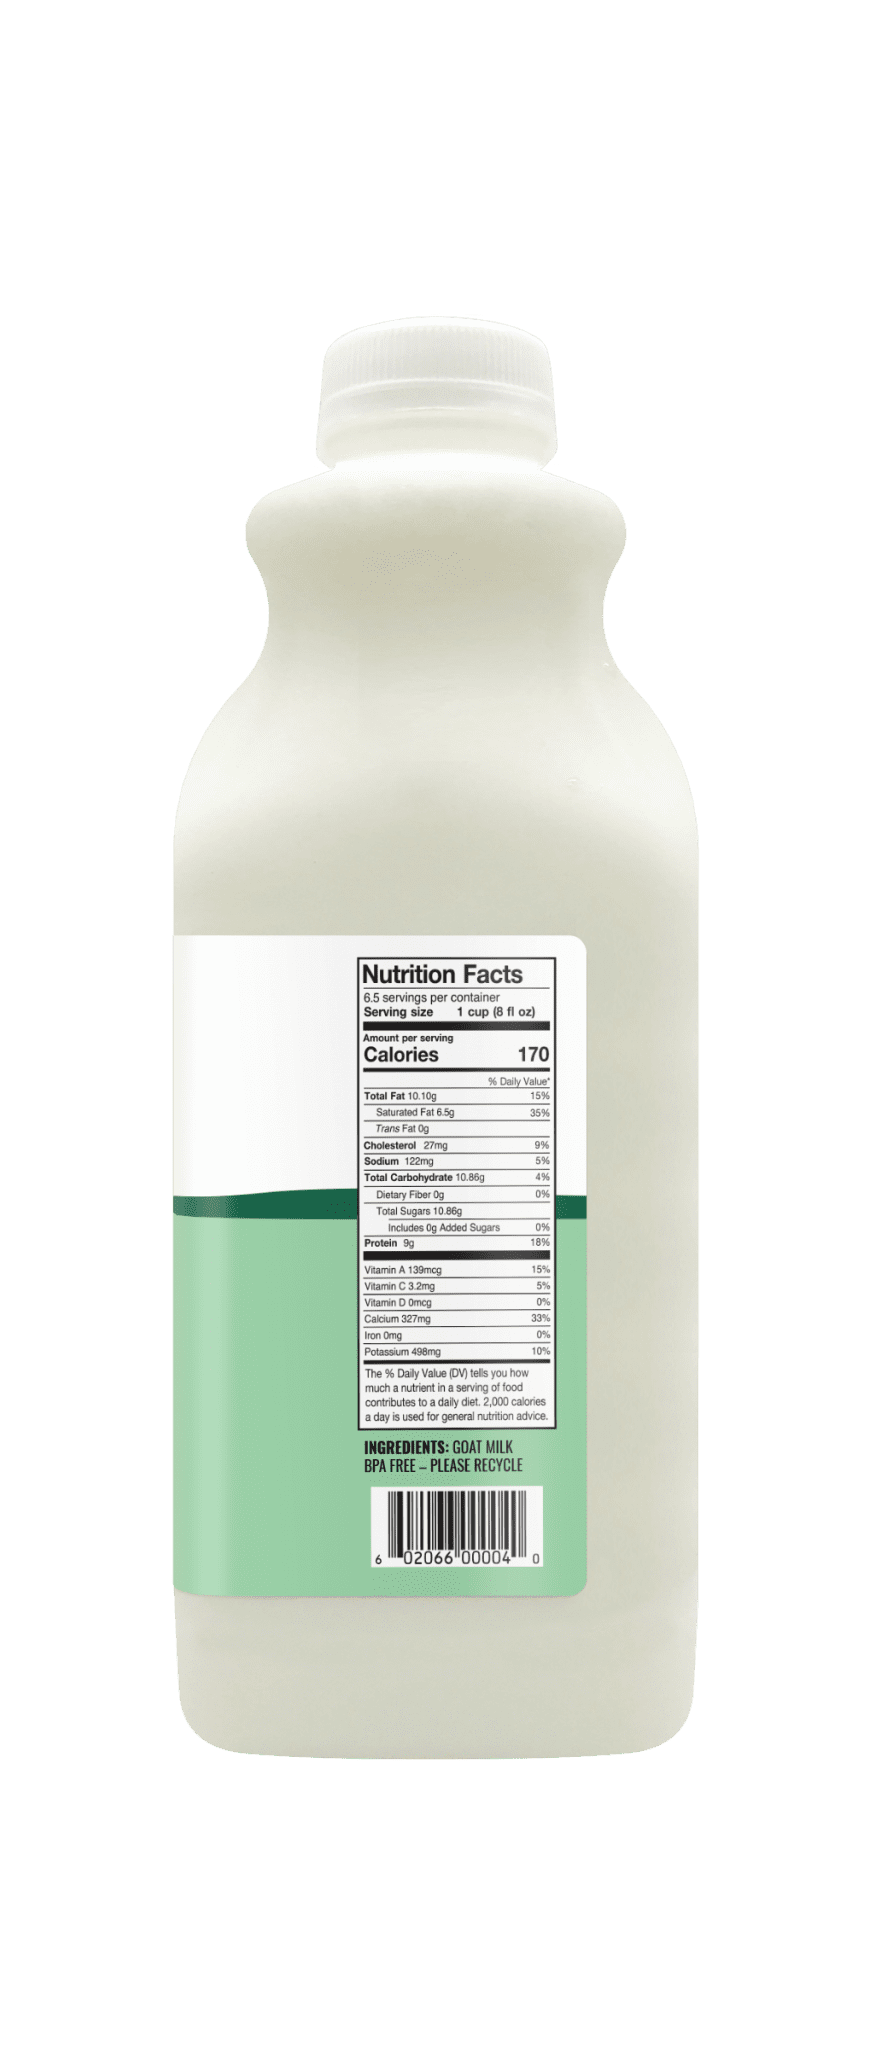 Summerhill Dairy goat milk 52oz nutrition facts